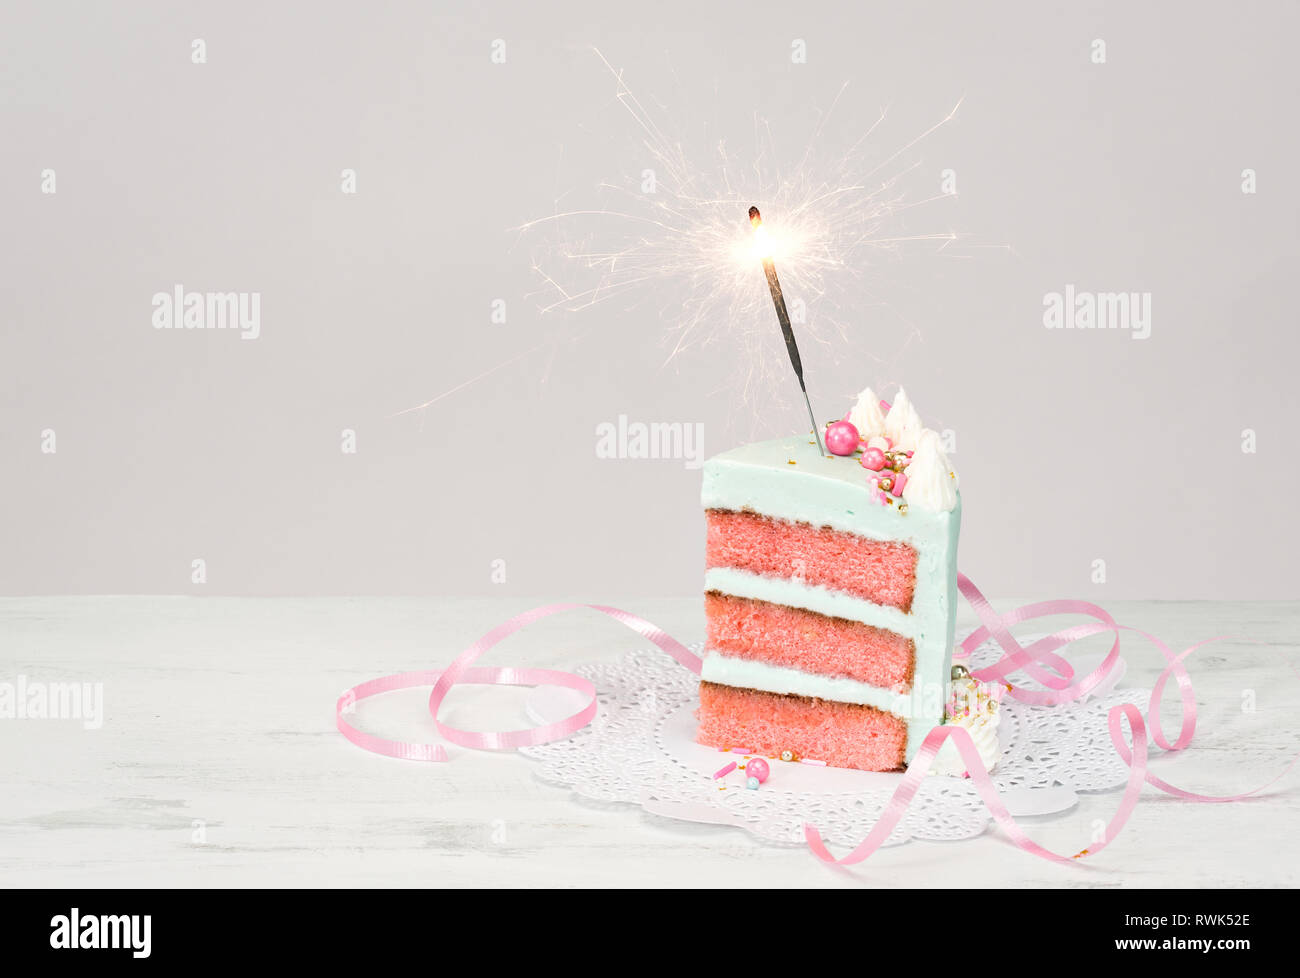 Groovy Slice Of Birthday Cake Over White Background With Pink Layers And Funny Birthday Cards Online Fluifree Goldxyz